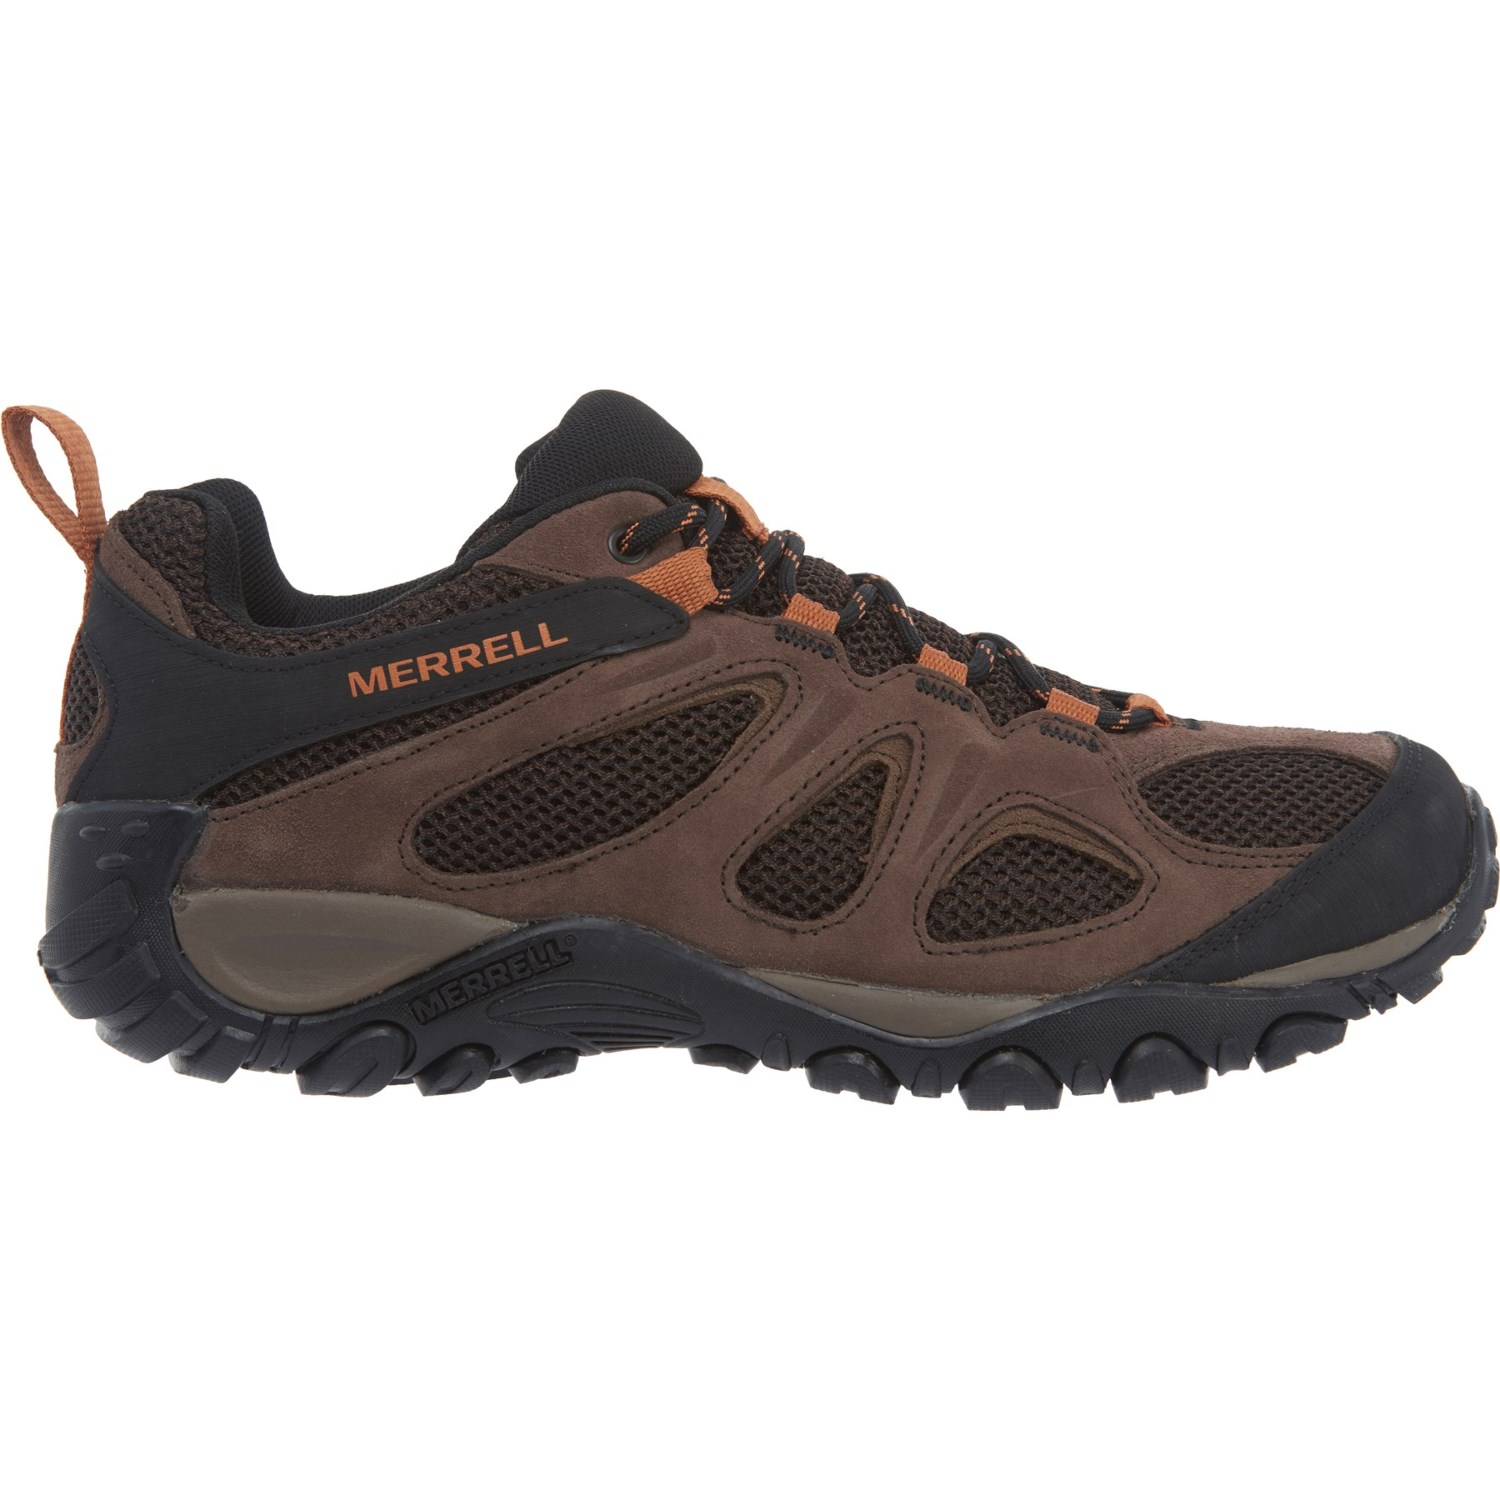 9cae7f50505 Merrell Yokota 2 Hiking Shoes (For Men) - Save 22%